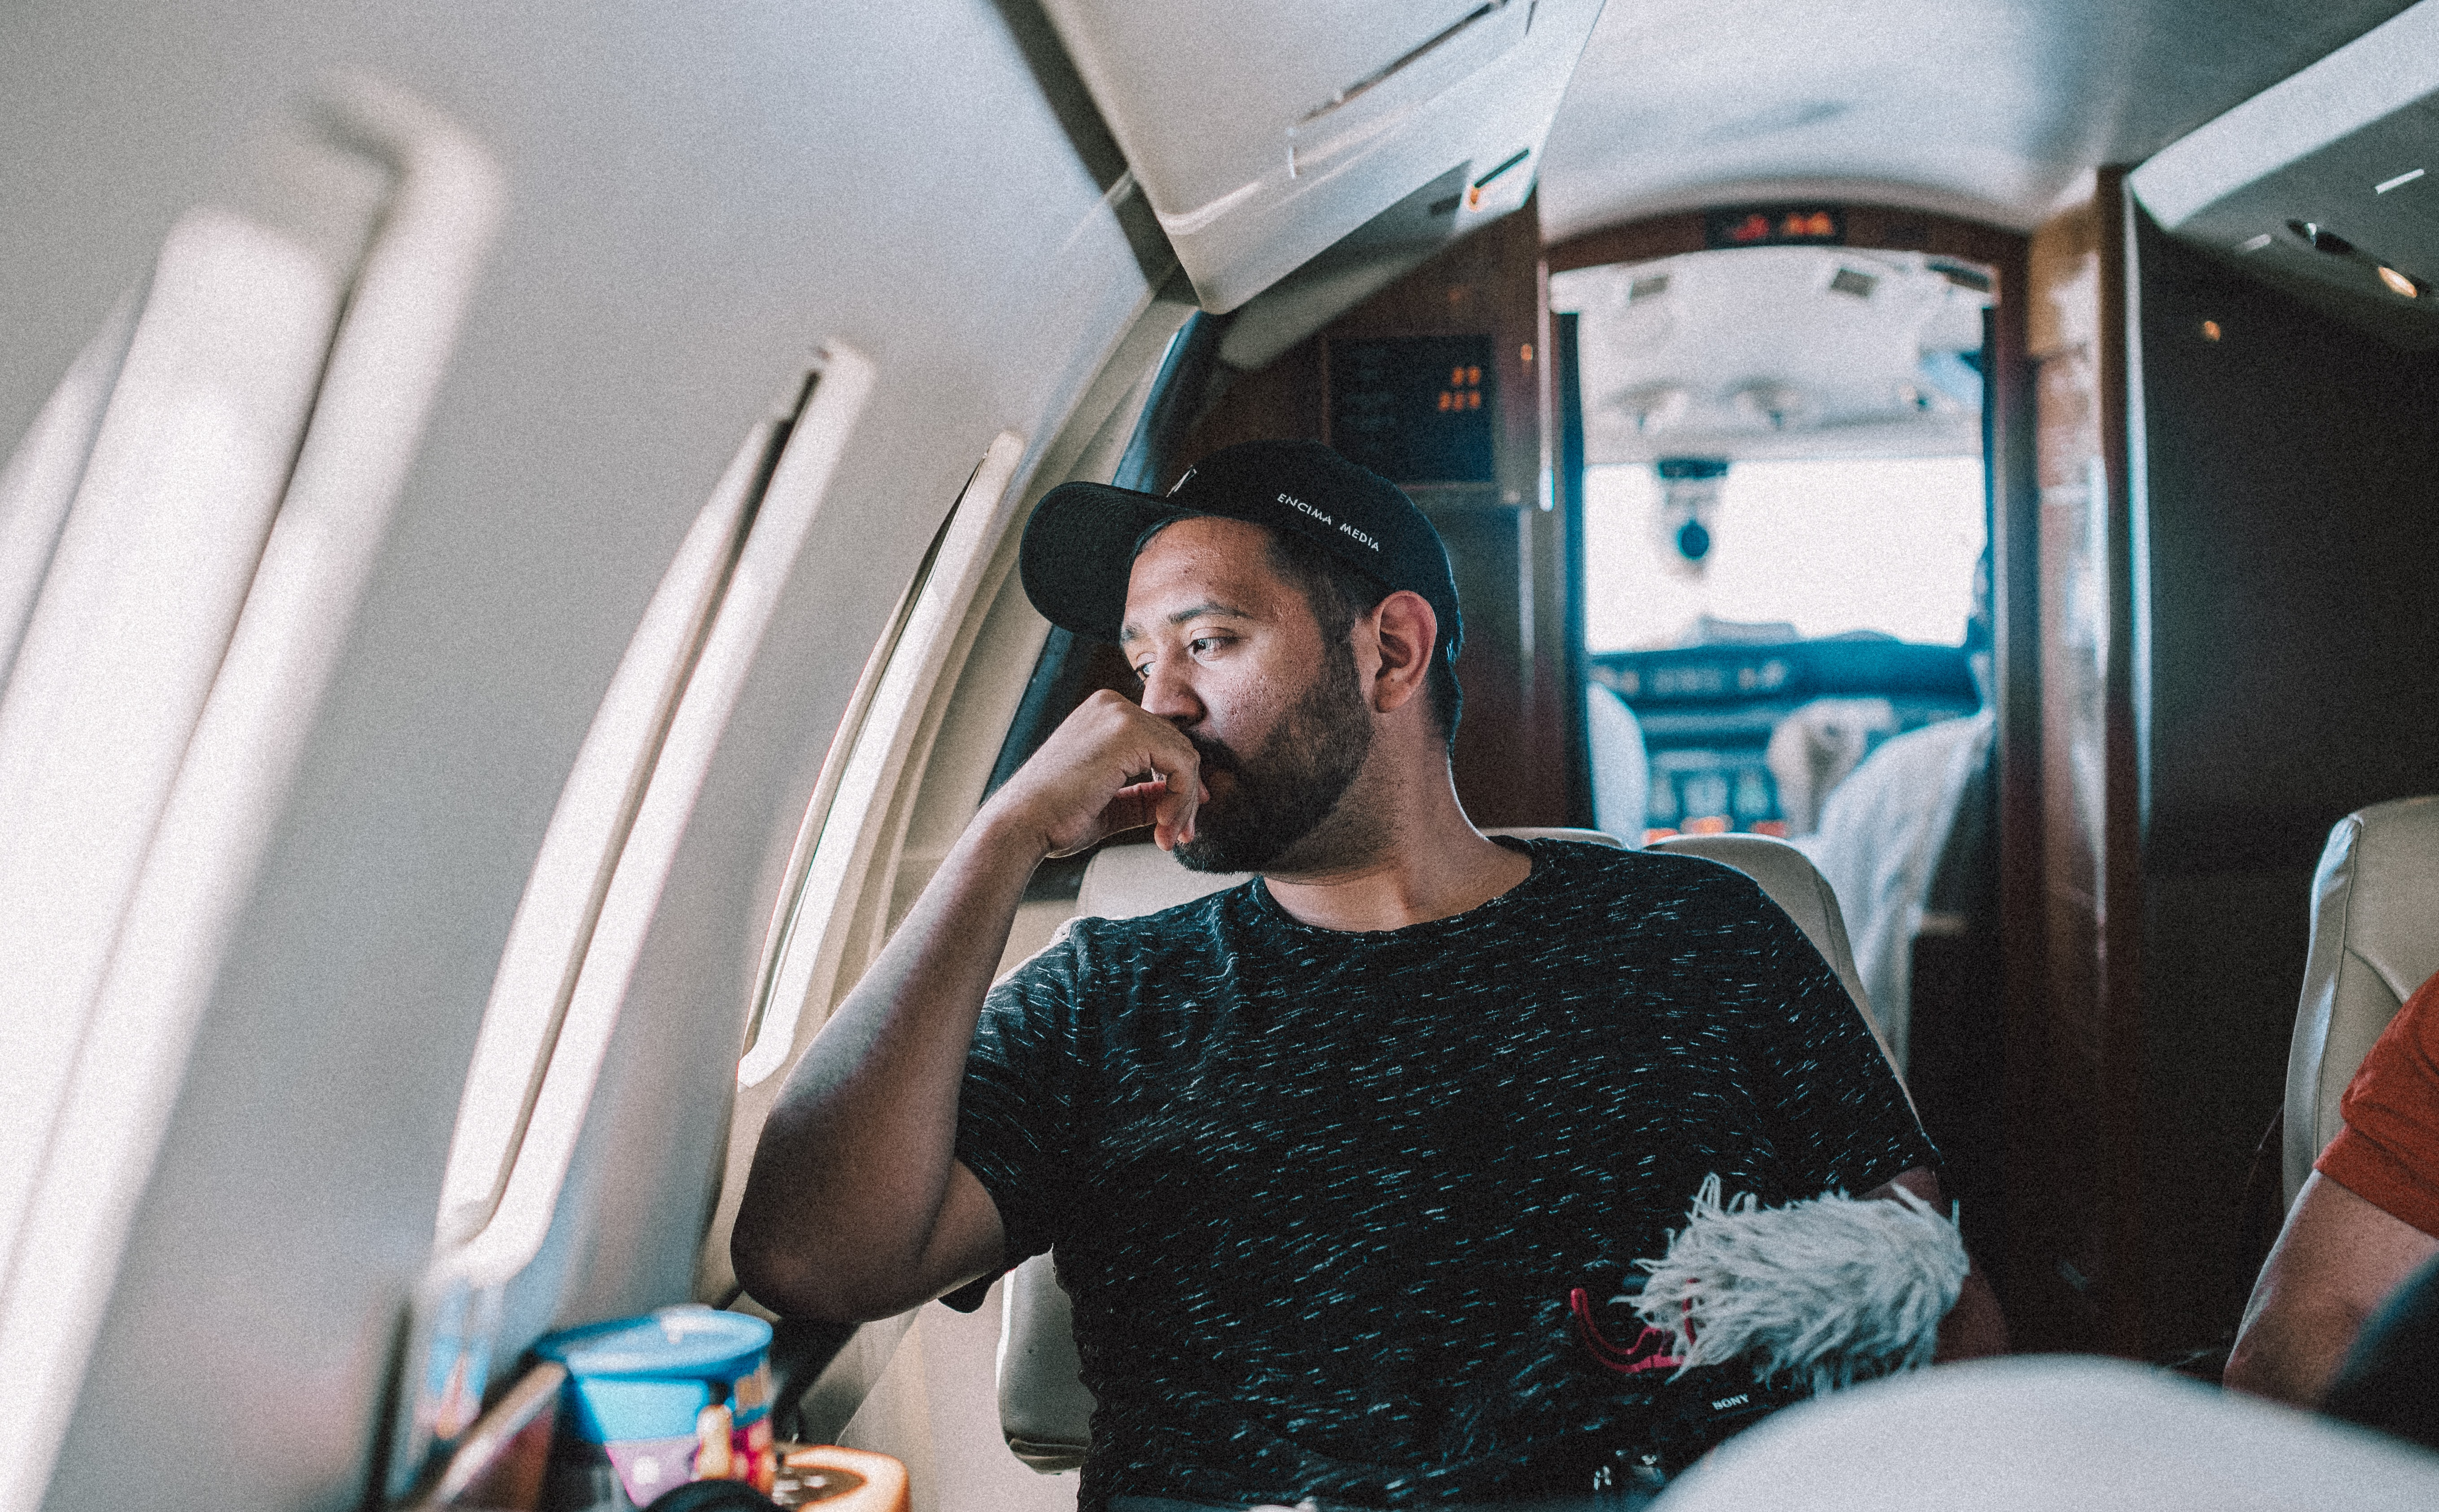 man sitting inside airplane